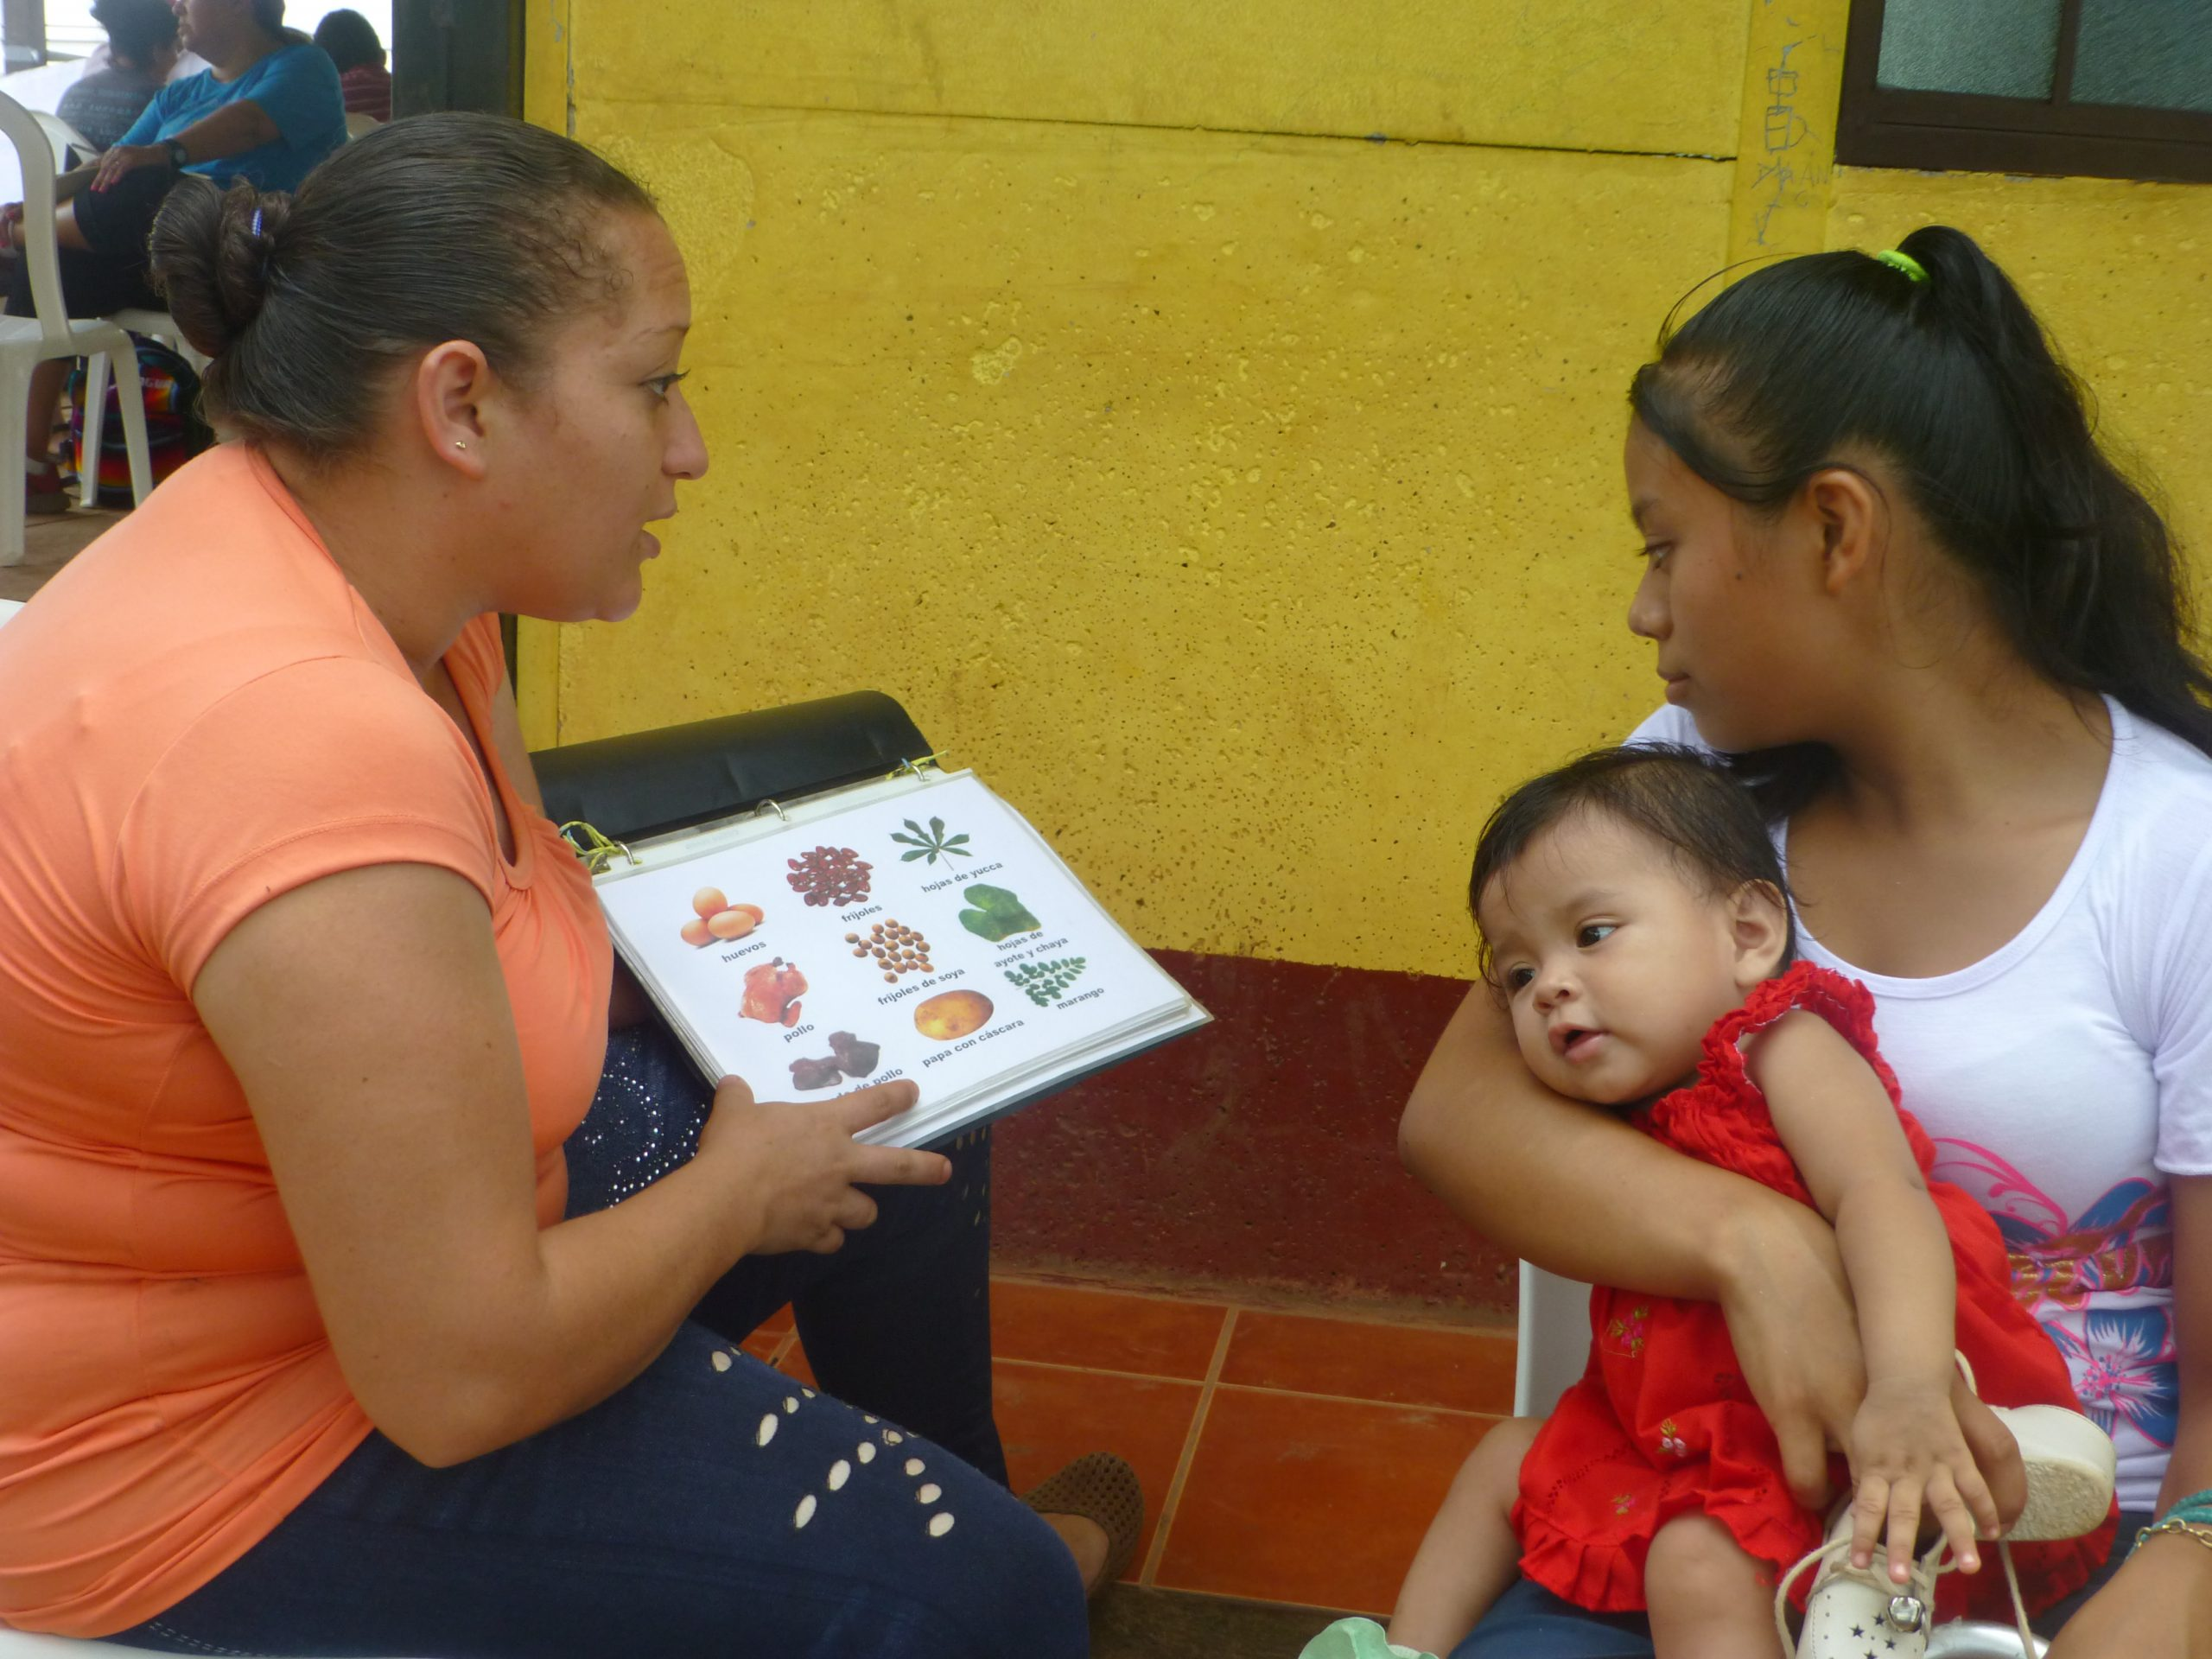 A community health worker shows health education information to a mother with a young child.